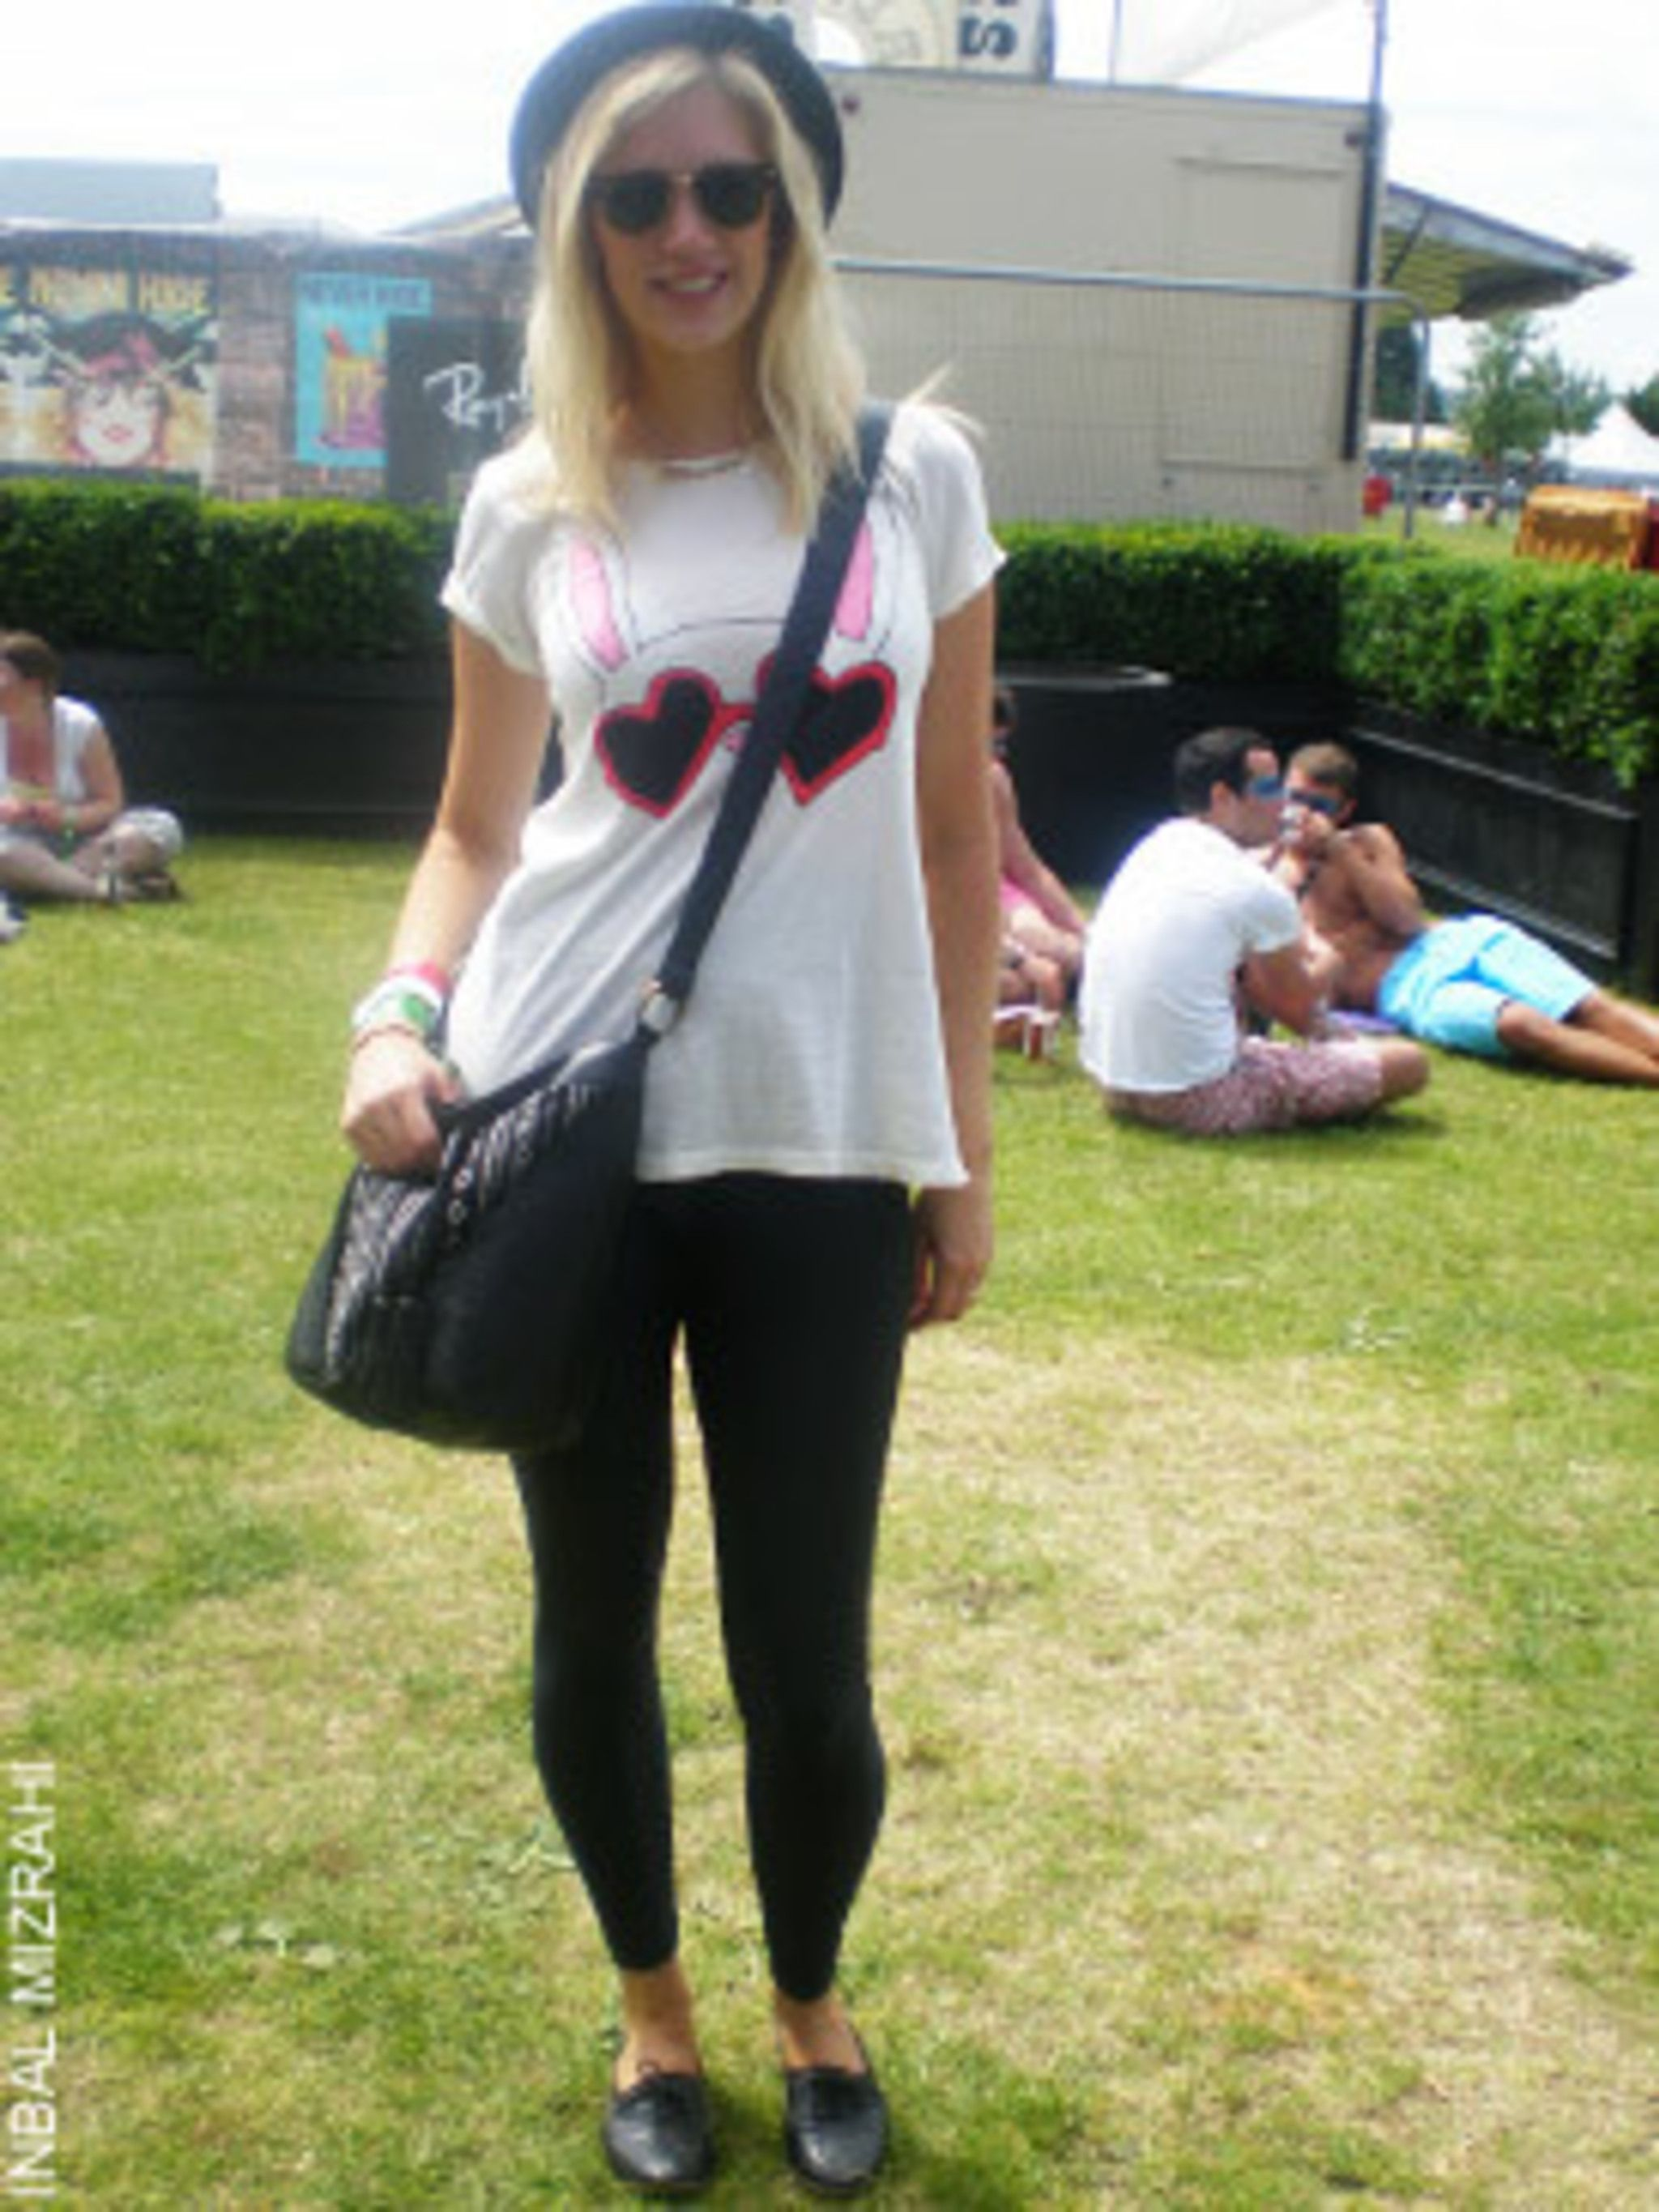 <p>Amy Rycroft, 27, Buyer for ASOS in leggings by American Apparel and t-shirt, bag and hat by ASOS.</p>